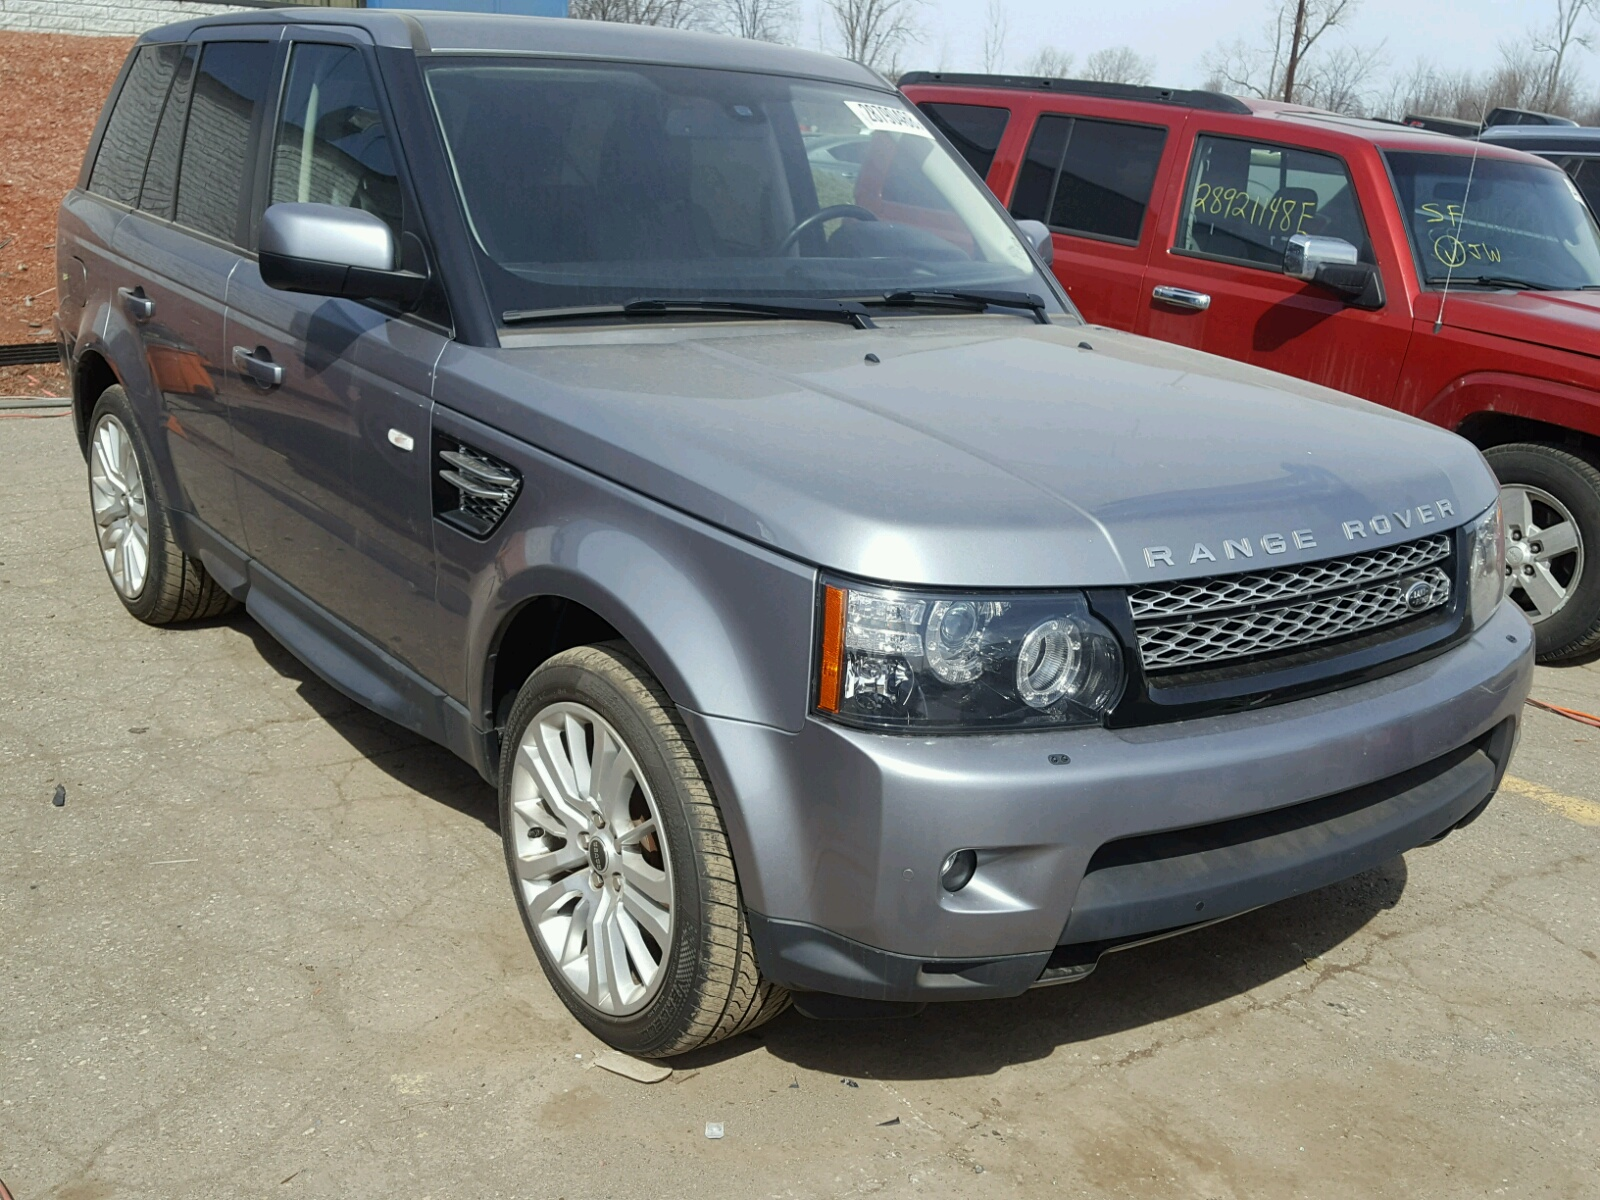 bbca landrover rover copart sale for pa lot cars land hse adamsburg at